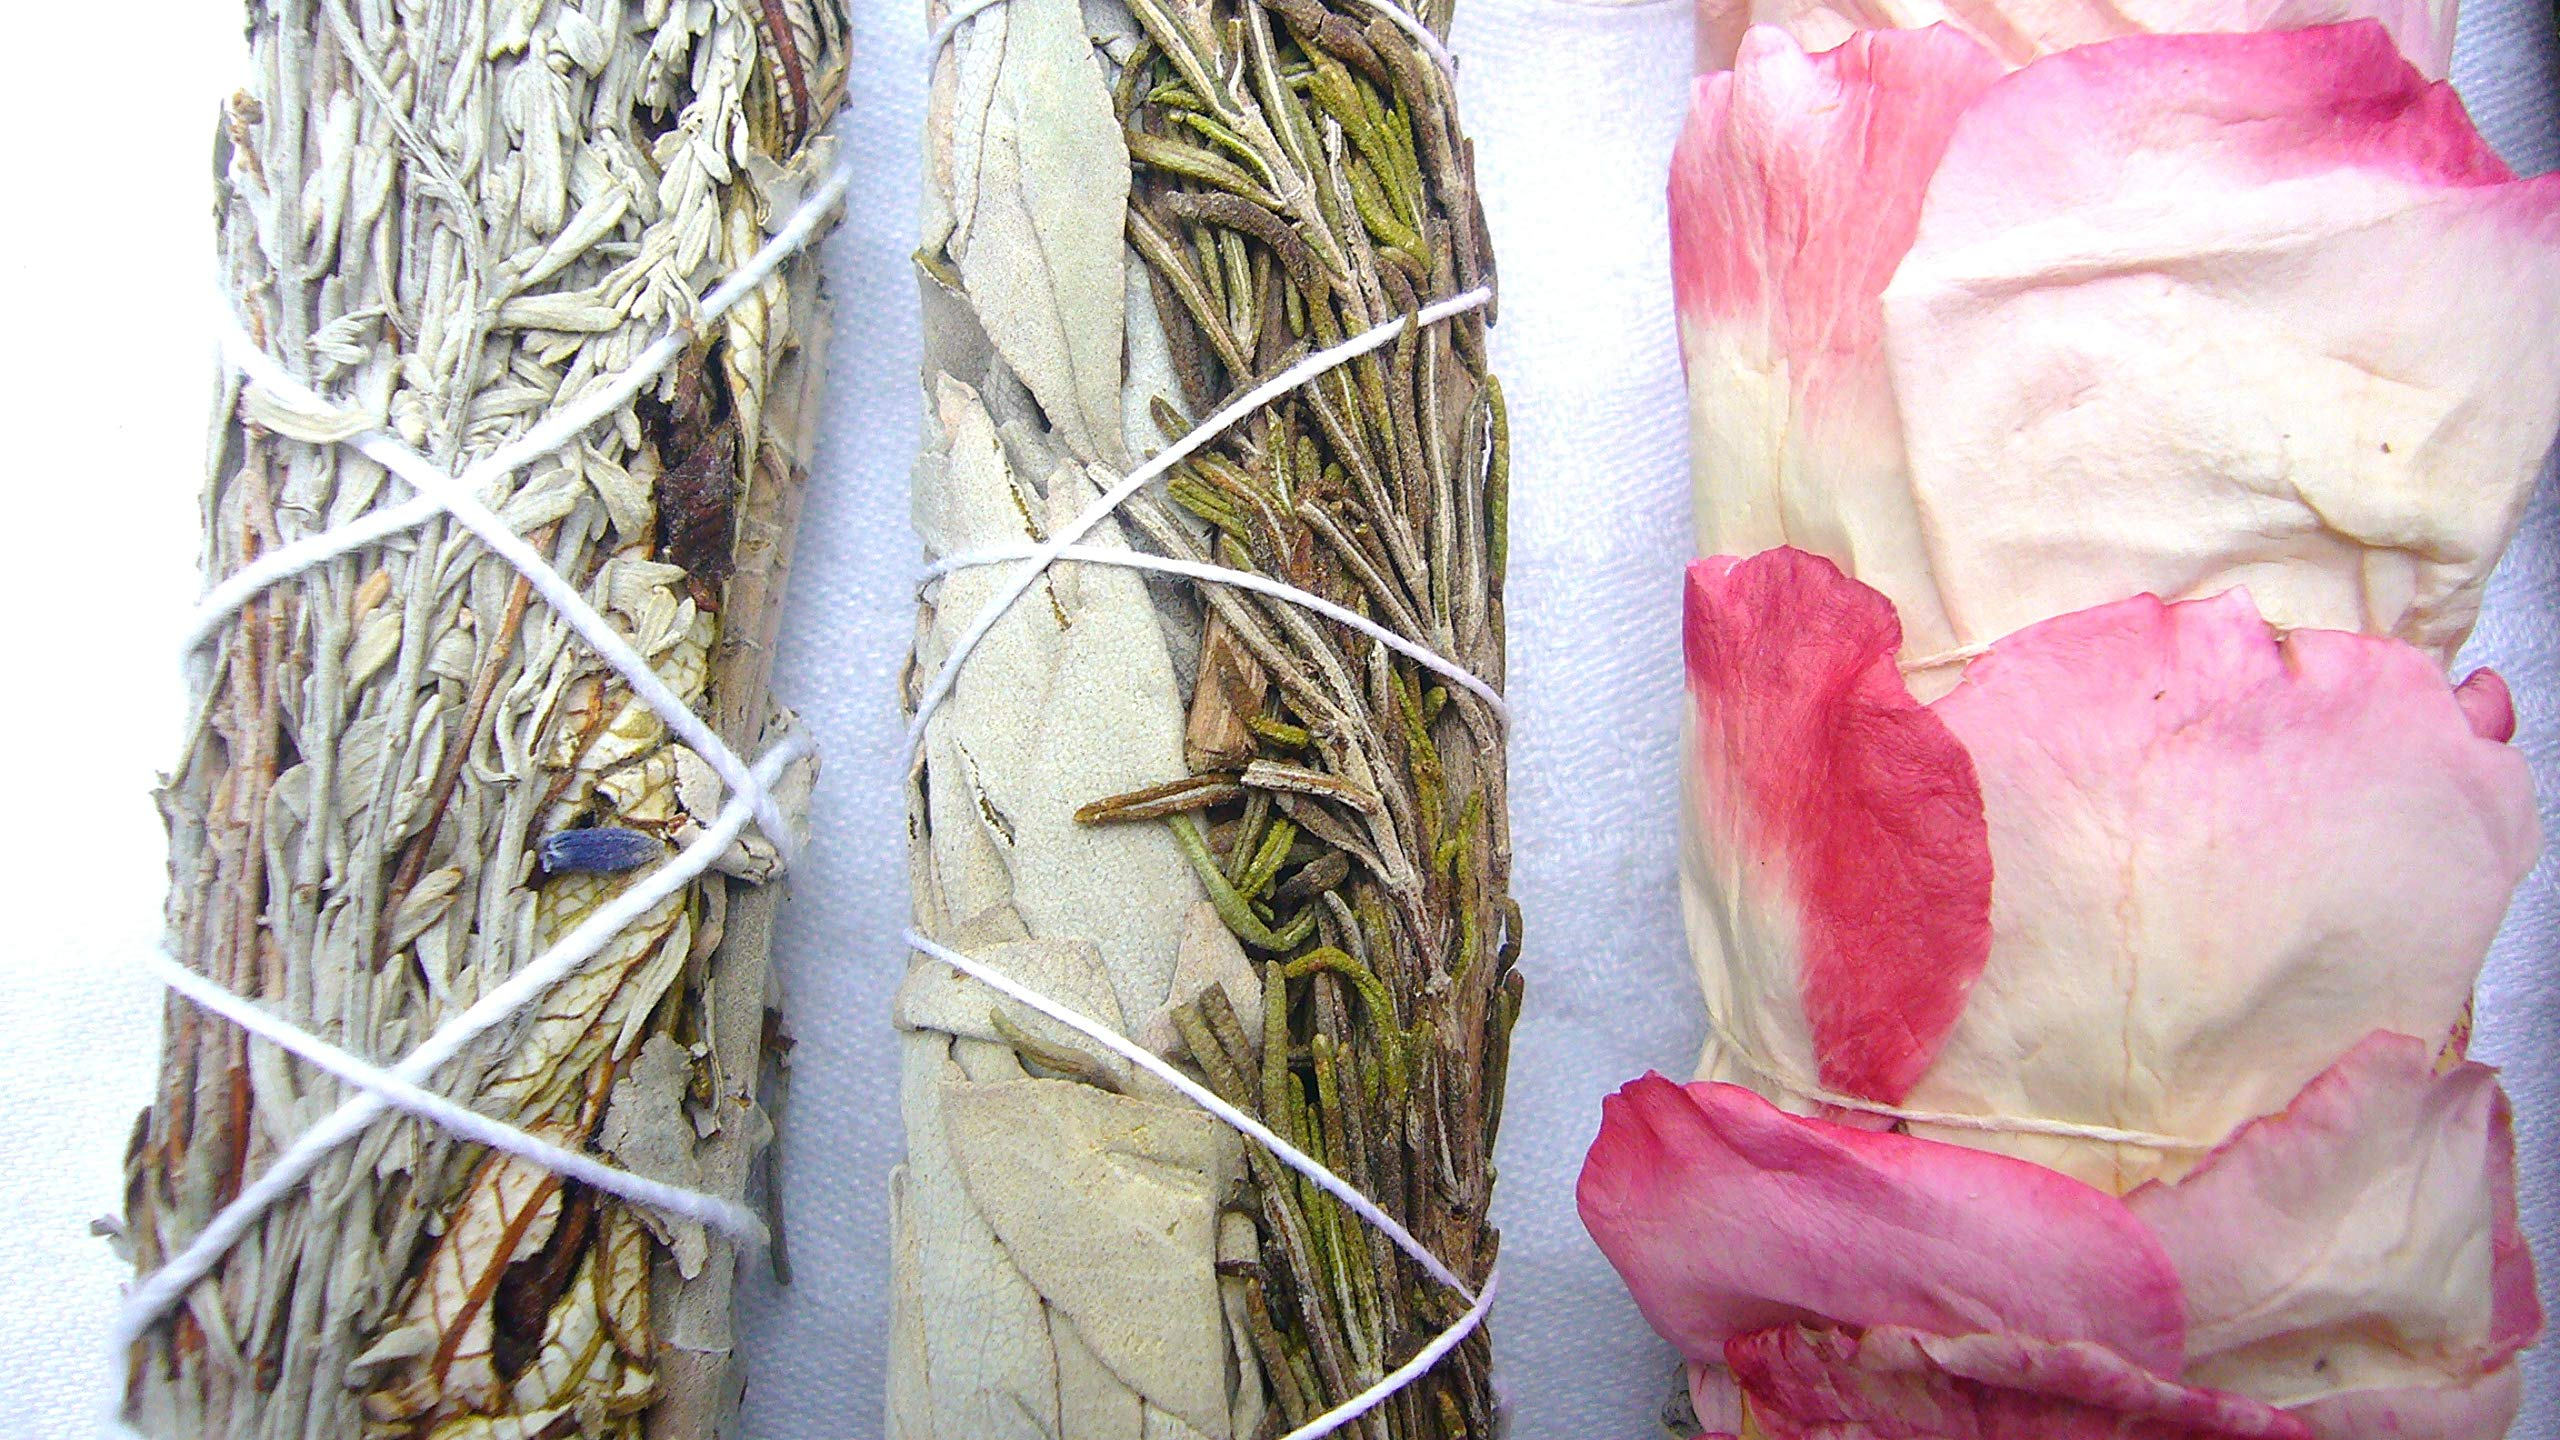 L'AMOUR yes! Luxury Smudge Kit | Rose White Sage, Rosemary, Lavender Smudge Stick, Yerba Santa & Blue Sage, White Sage, Palo Santo, Crystal Candle | Home Cleansing, Blessing, Manifesting, Rituals by L'AMOUR yes! (Image #2)